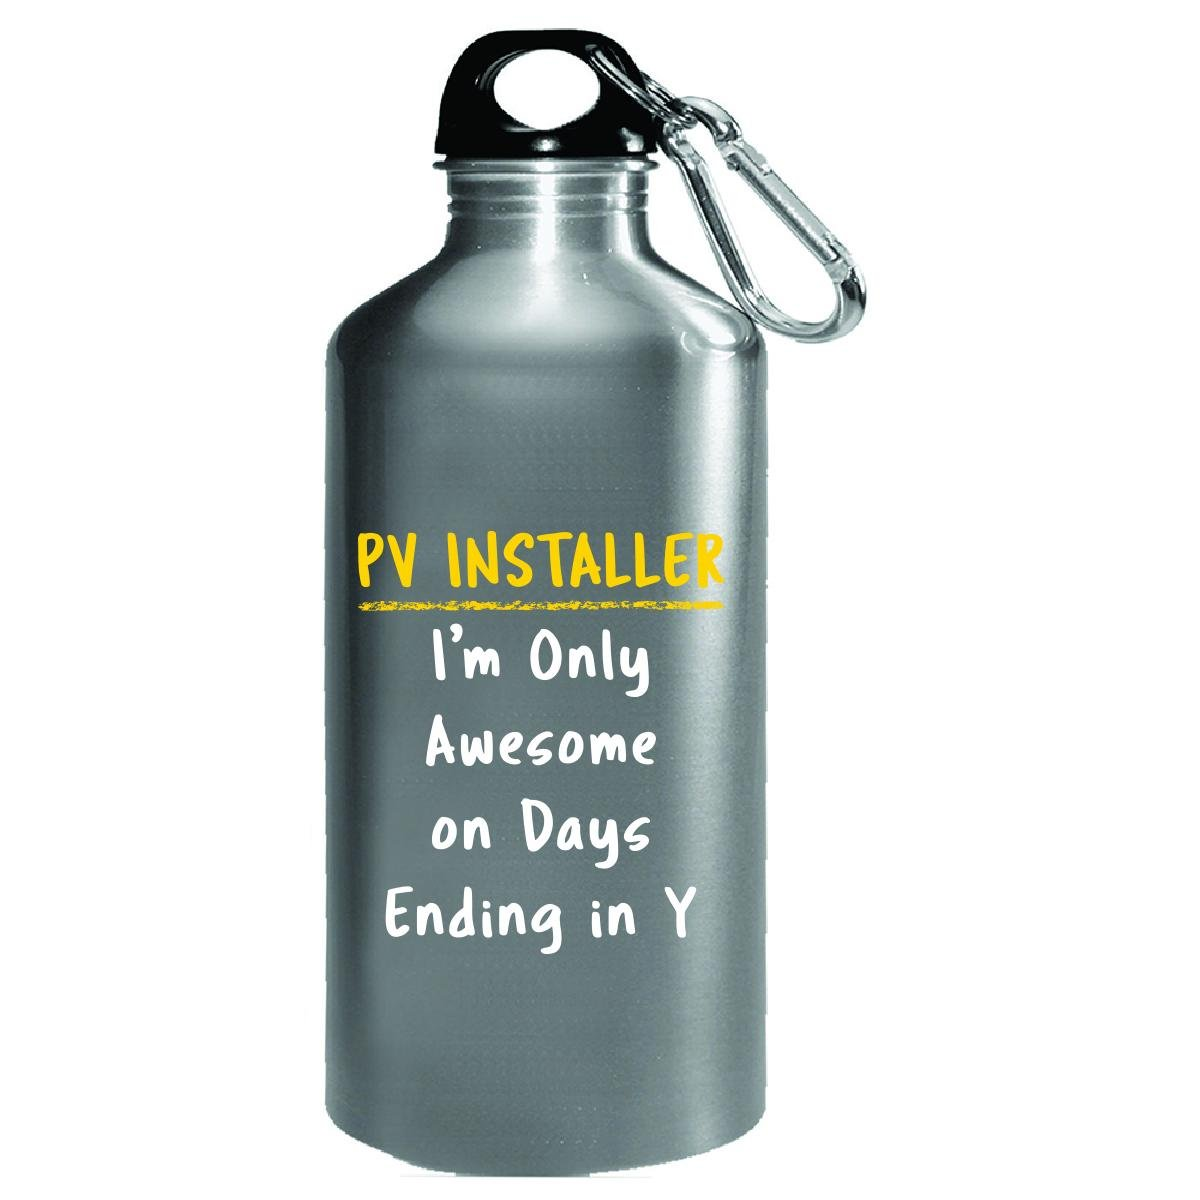 Pv Installer Awesome Sarcastic Funny Saying Solar Job Gift - Water Bottle